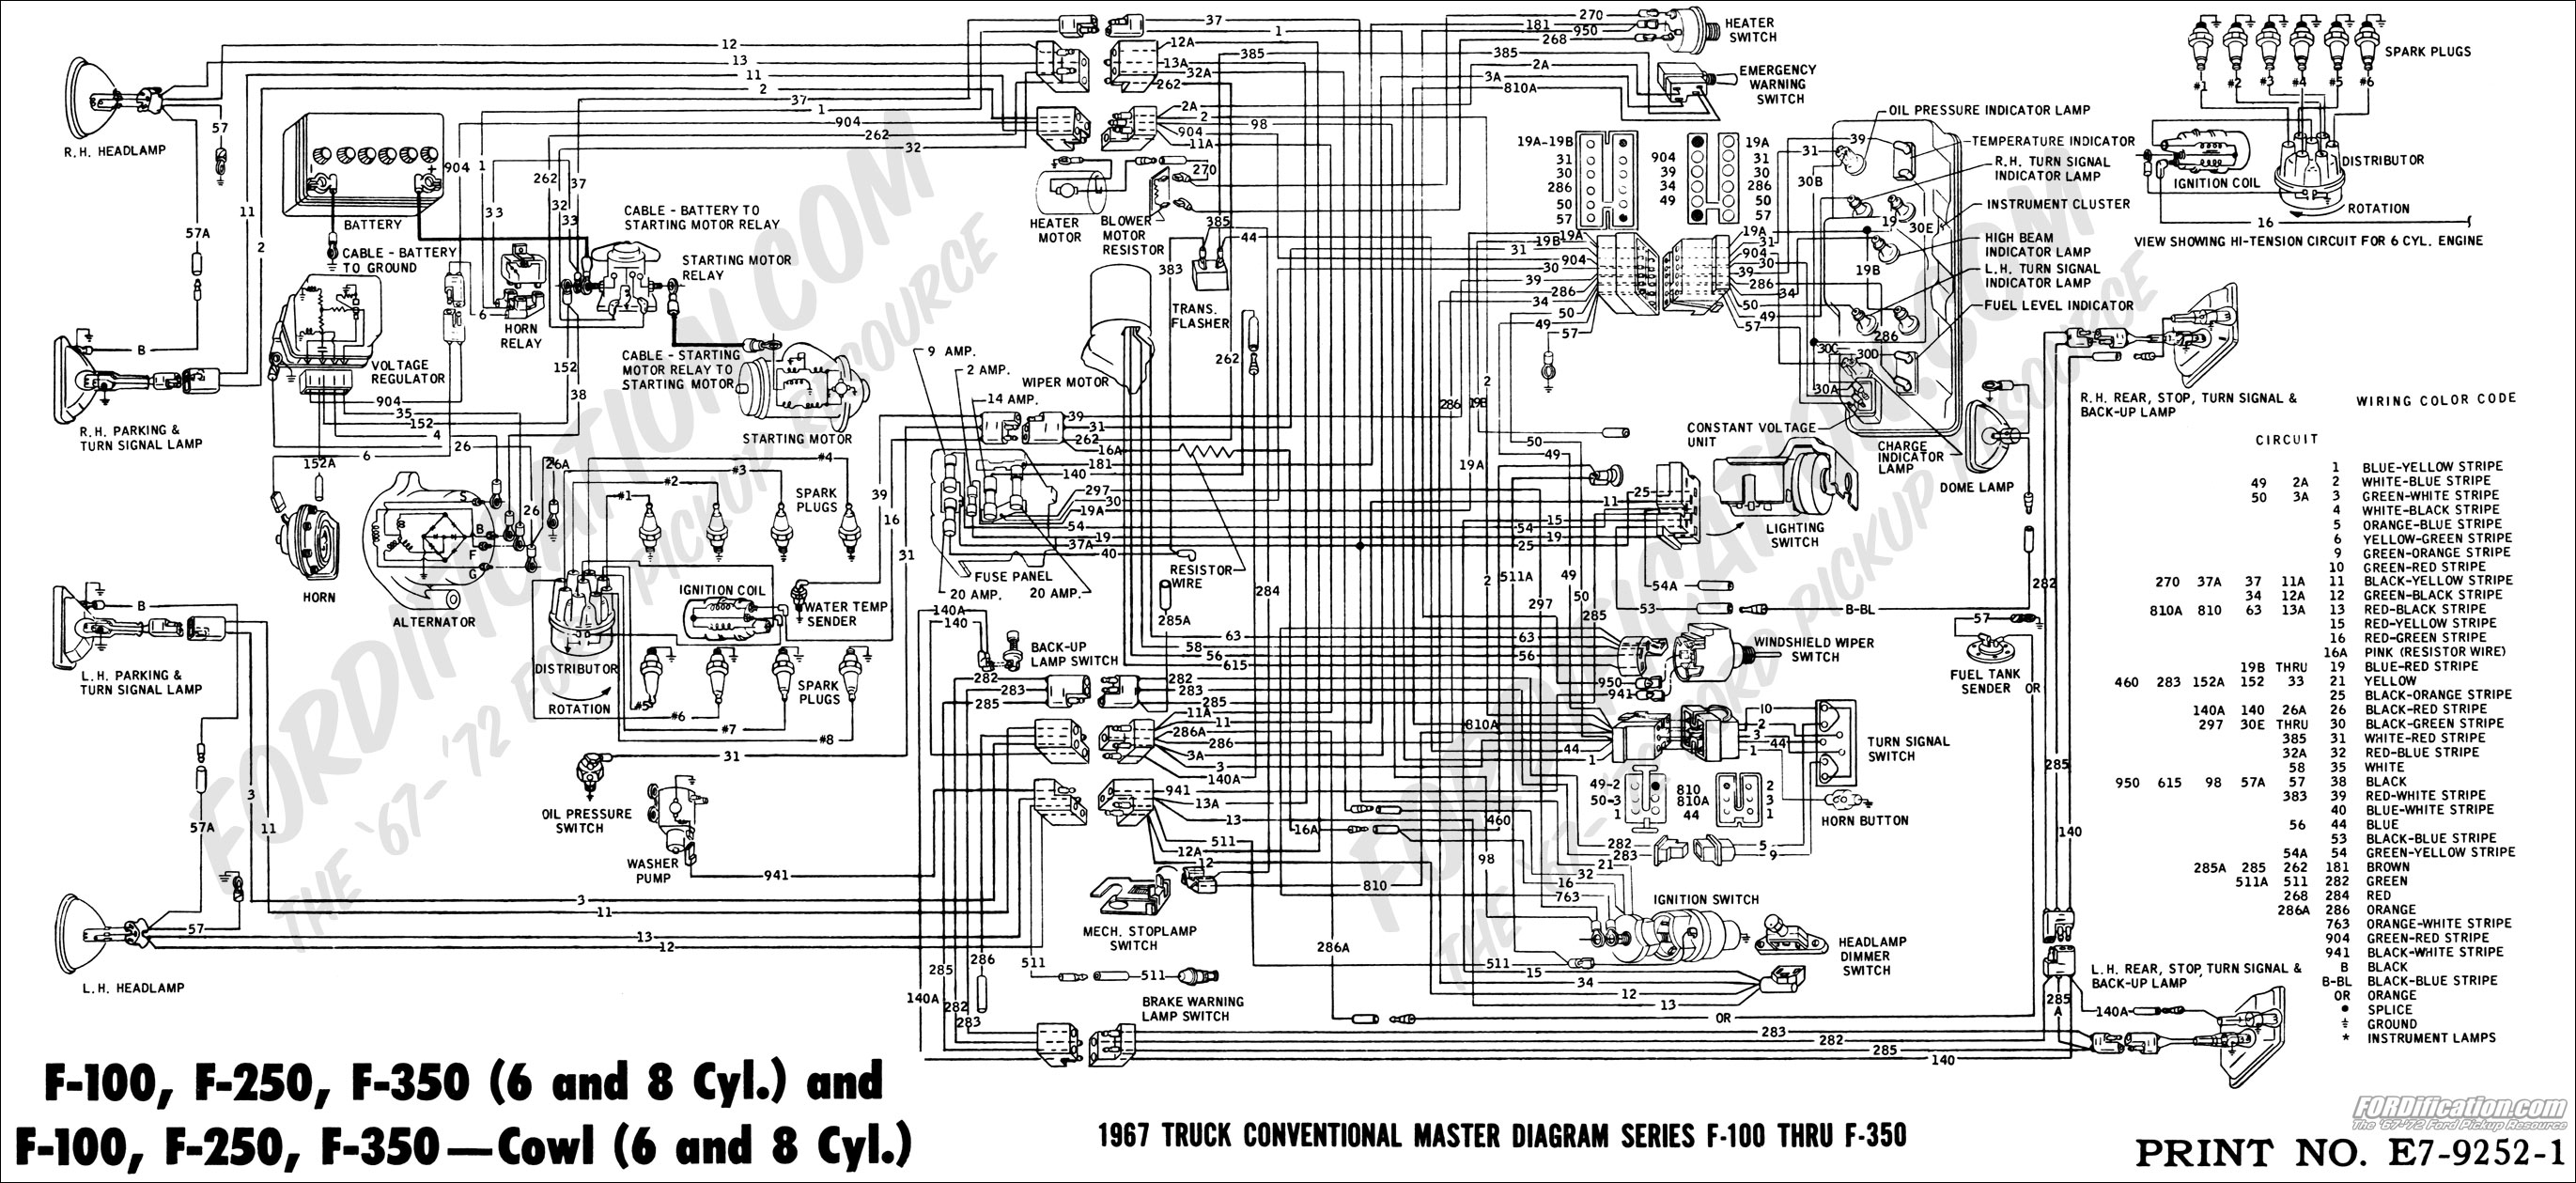 67masterdiagram 07 f150 starter wiring diagram 07 f150 wiring diagram \u2022 wiring 2001 ford f150 wiring diagram at gsmx.co